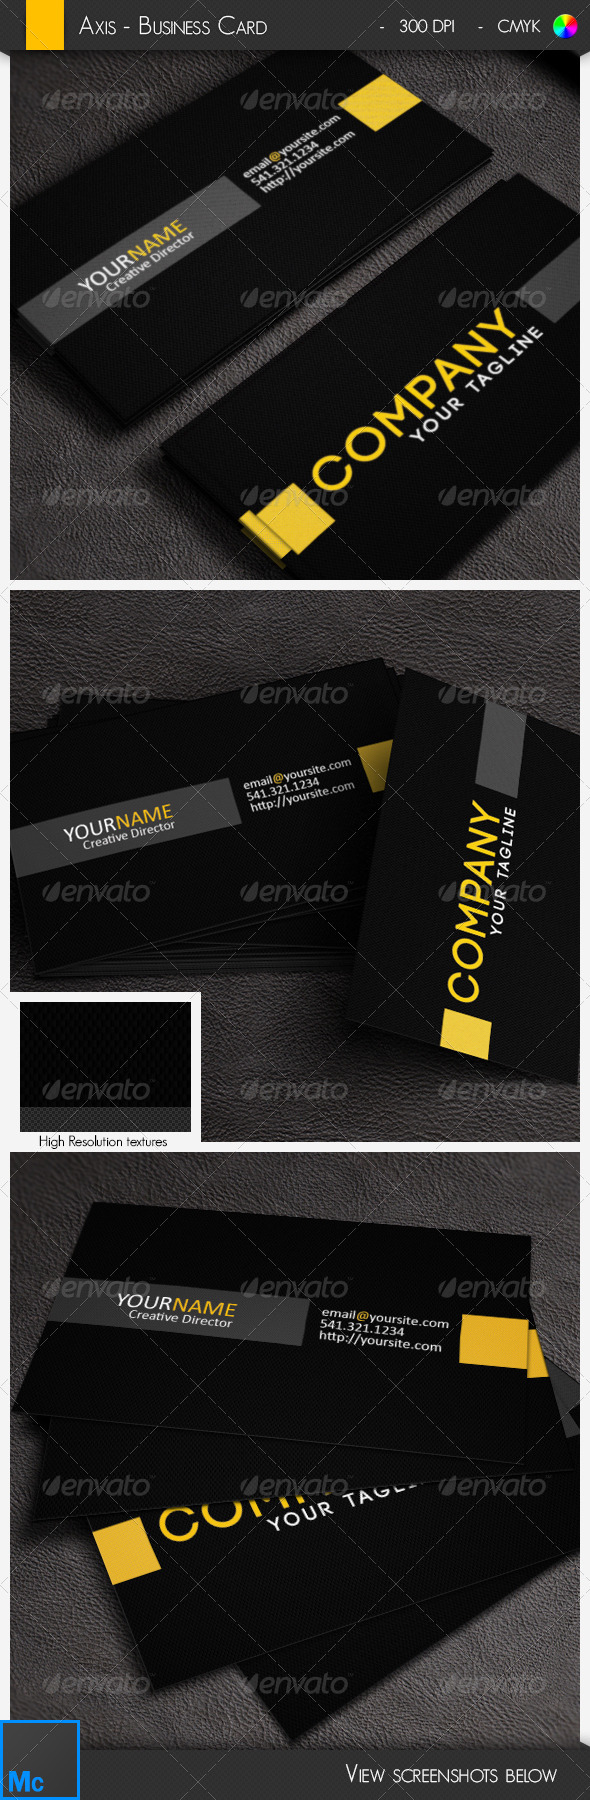 GraphicRiver Axis Corporate Business Card 6506323